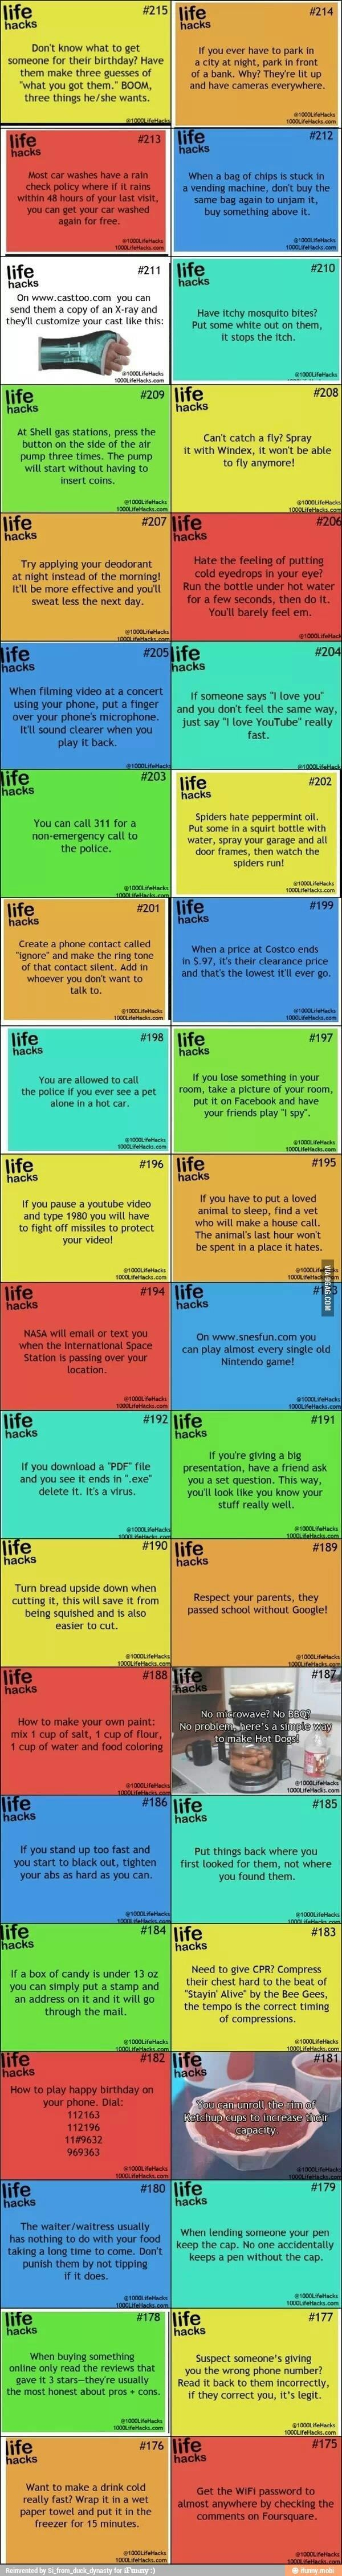 This is the most useful life hack section I have ever seen!